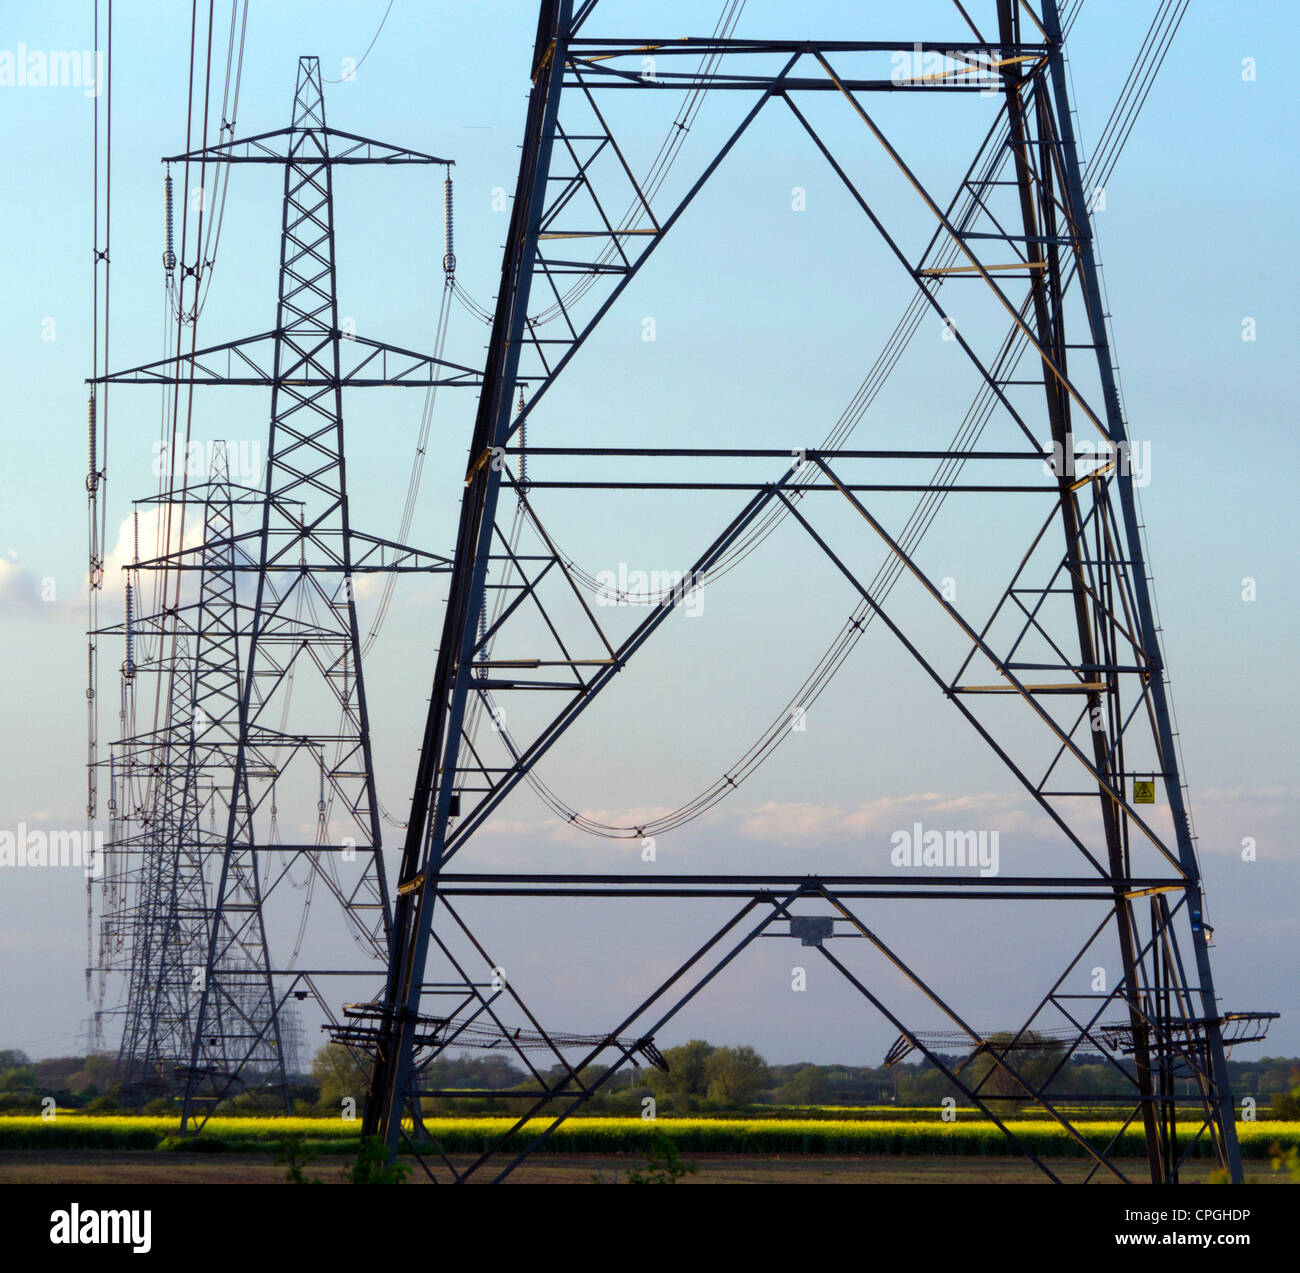 Electricity pylons, the National Grid, England, UK - Stock Image